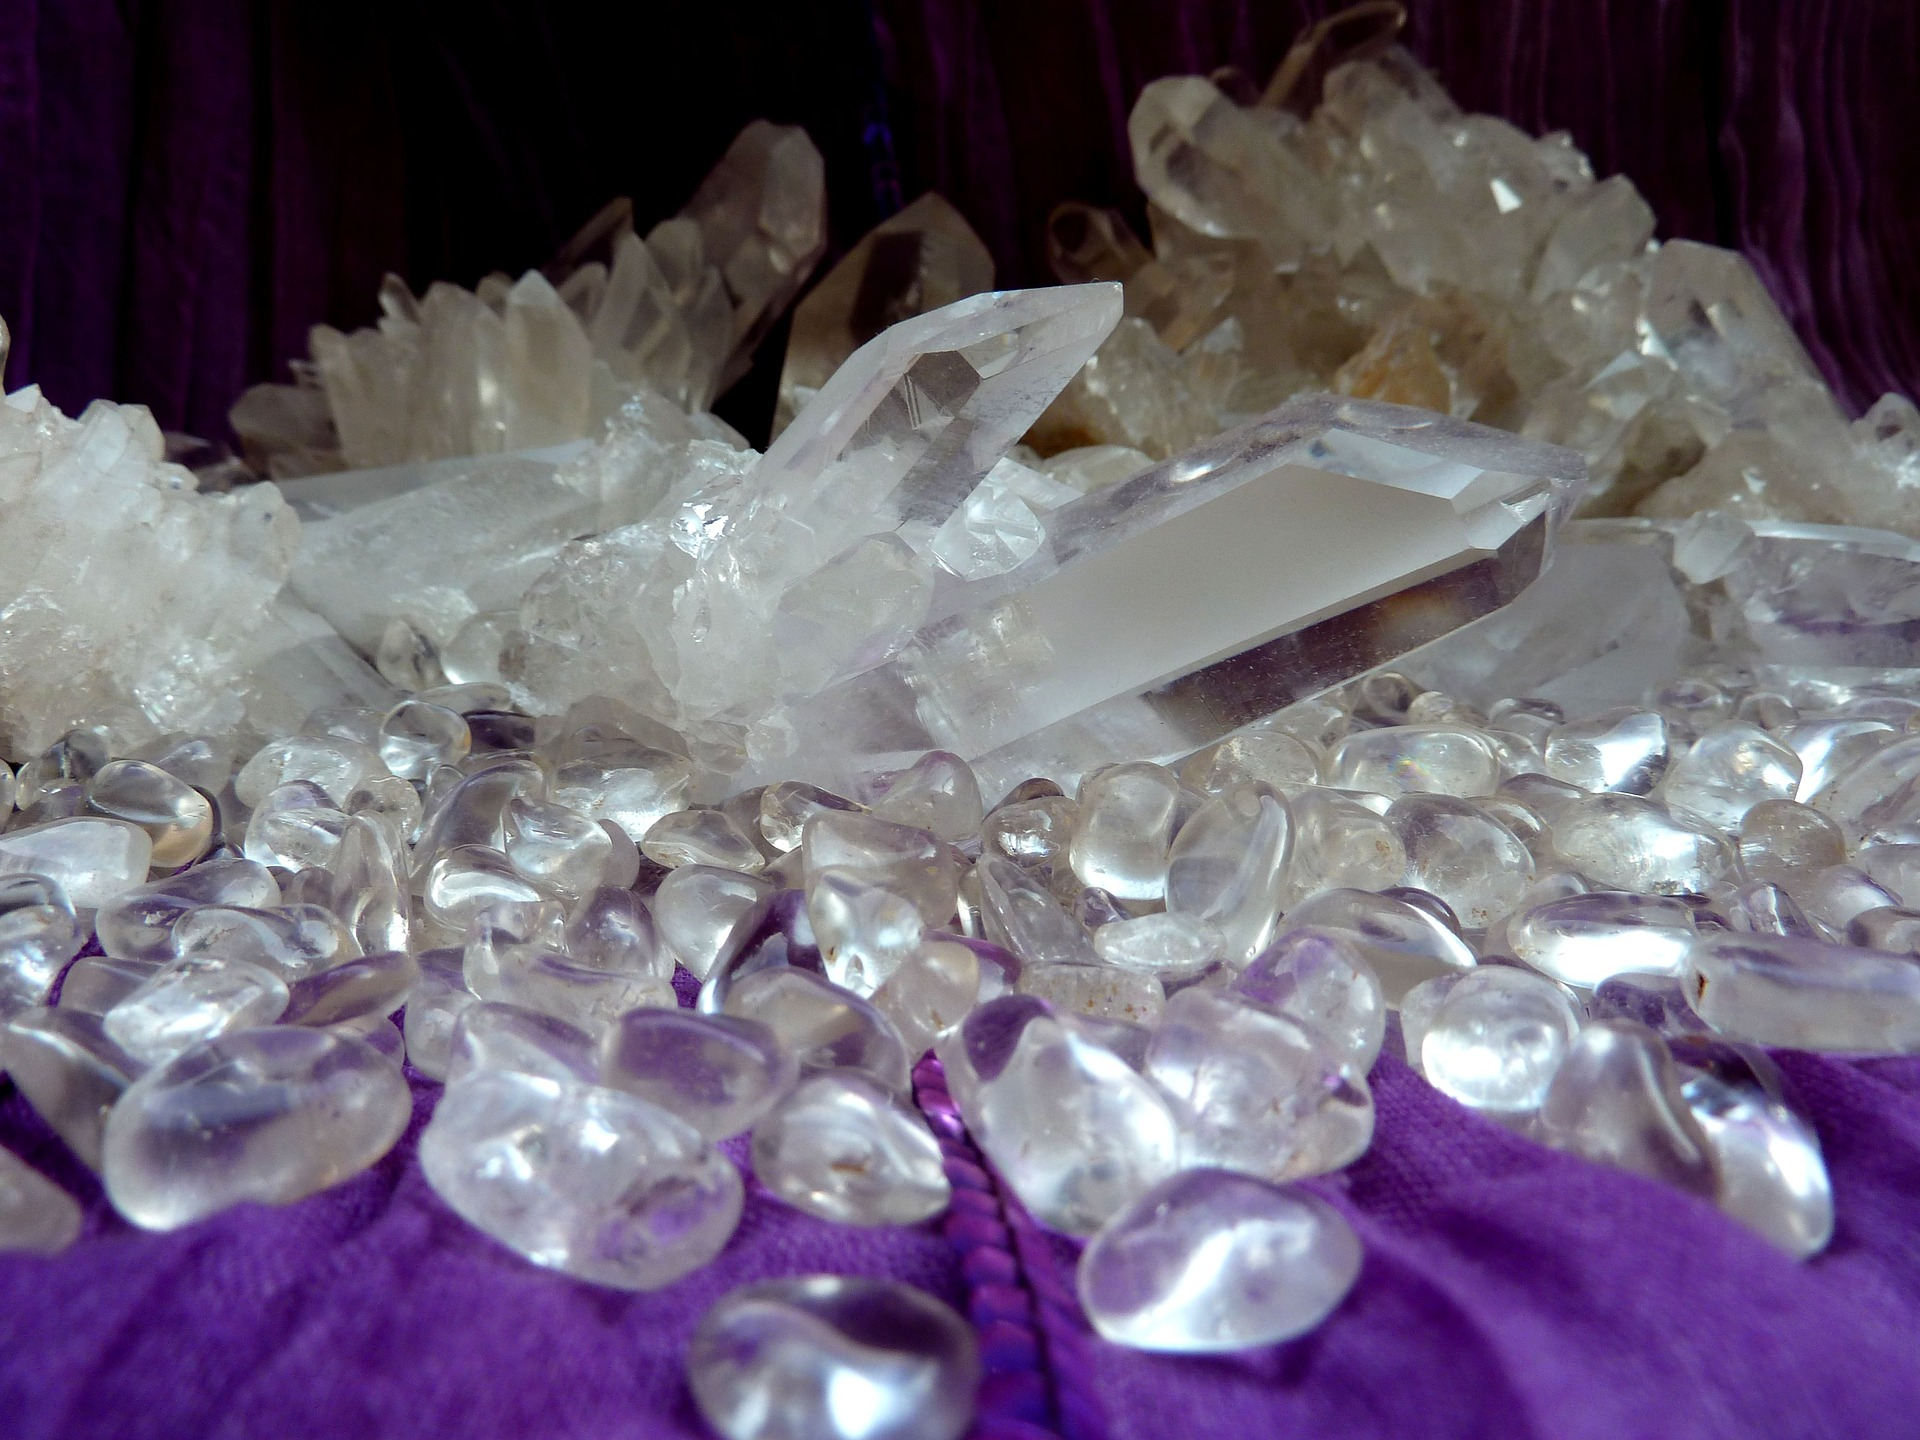 Seven Useful Benefits From Owning A Clear Quartz